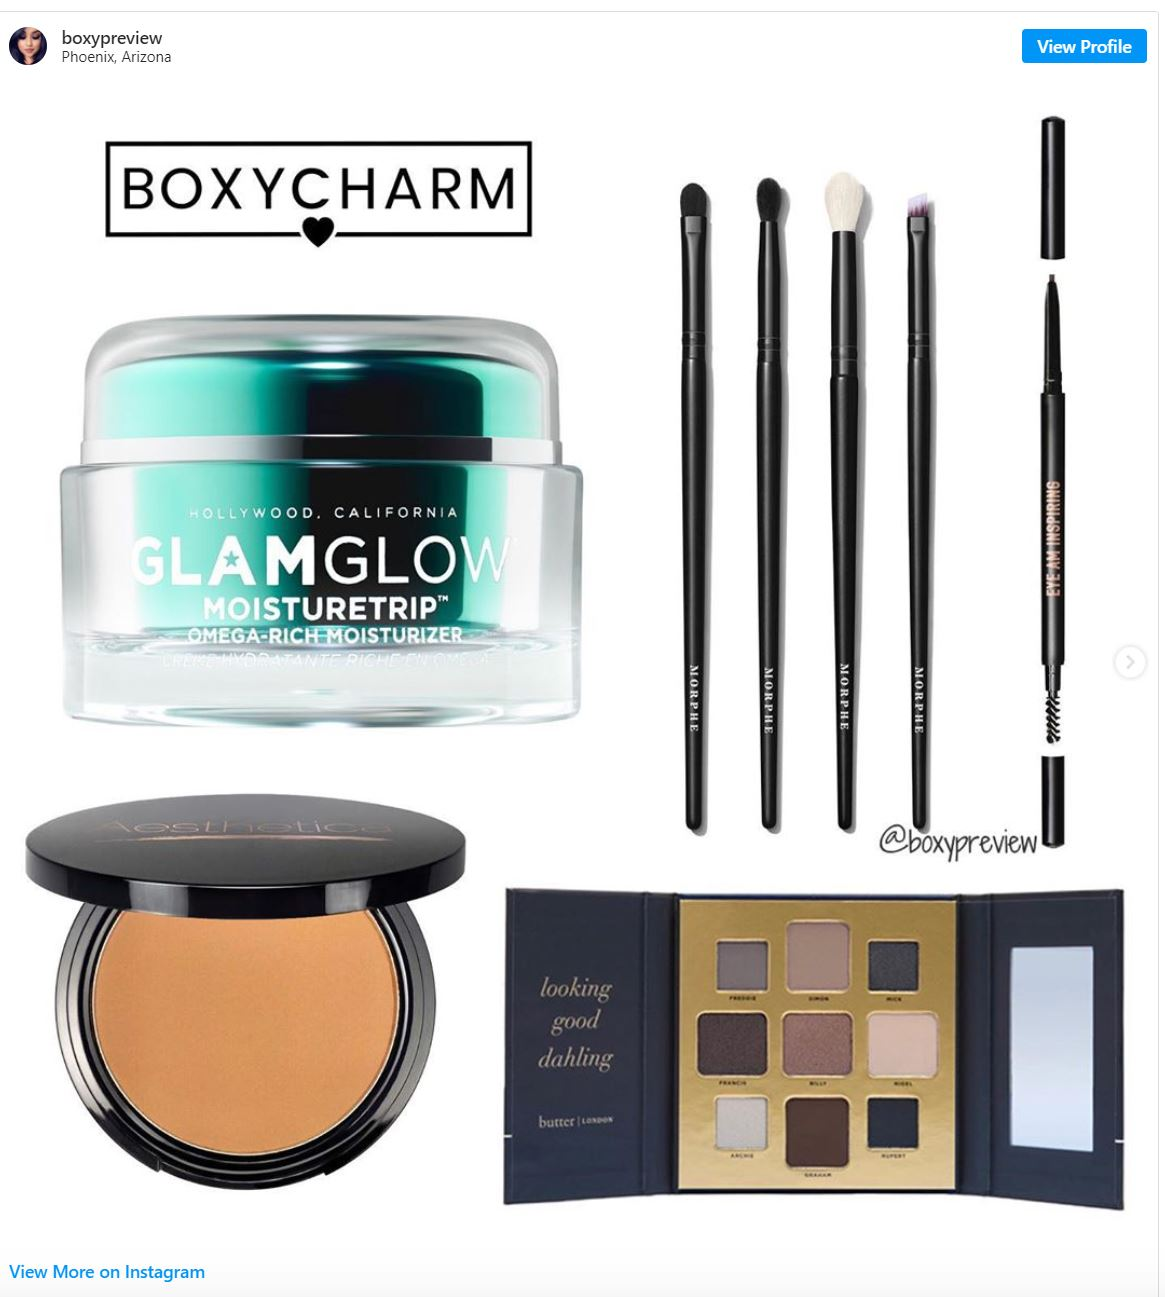 FULL Boxycharm August 2020 Spoilers